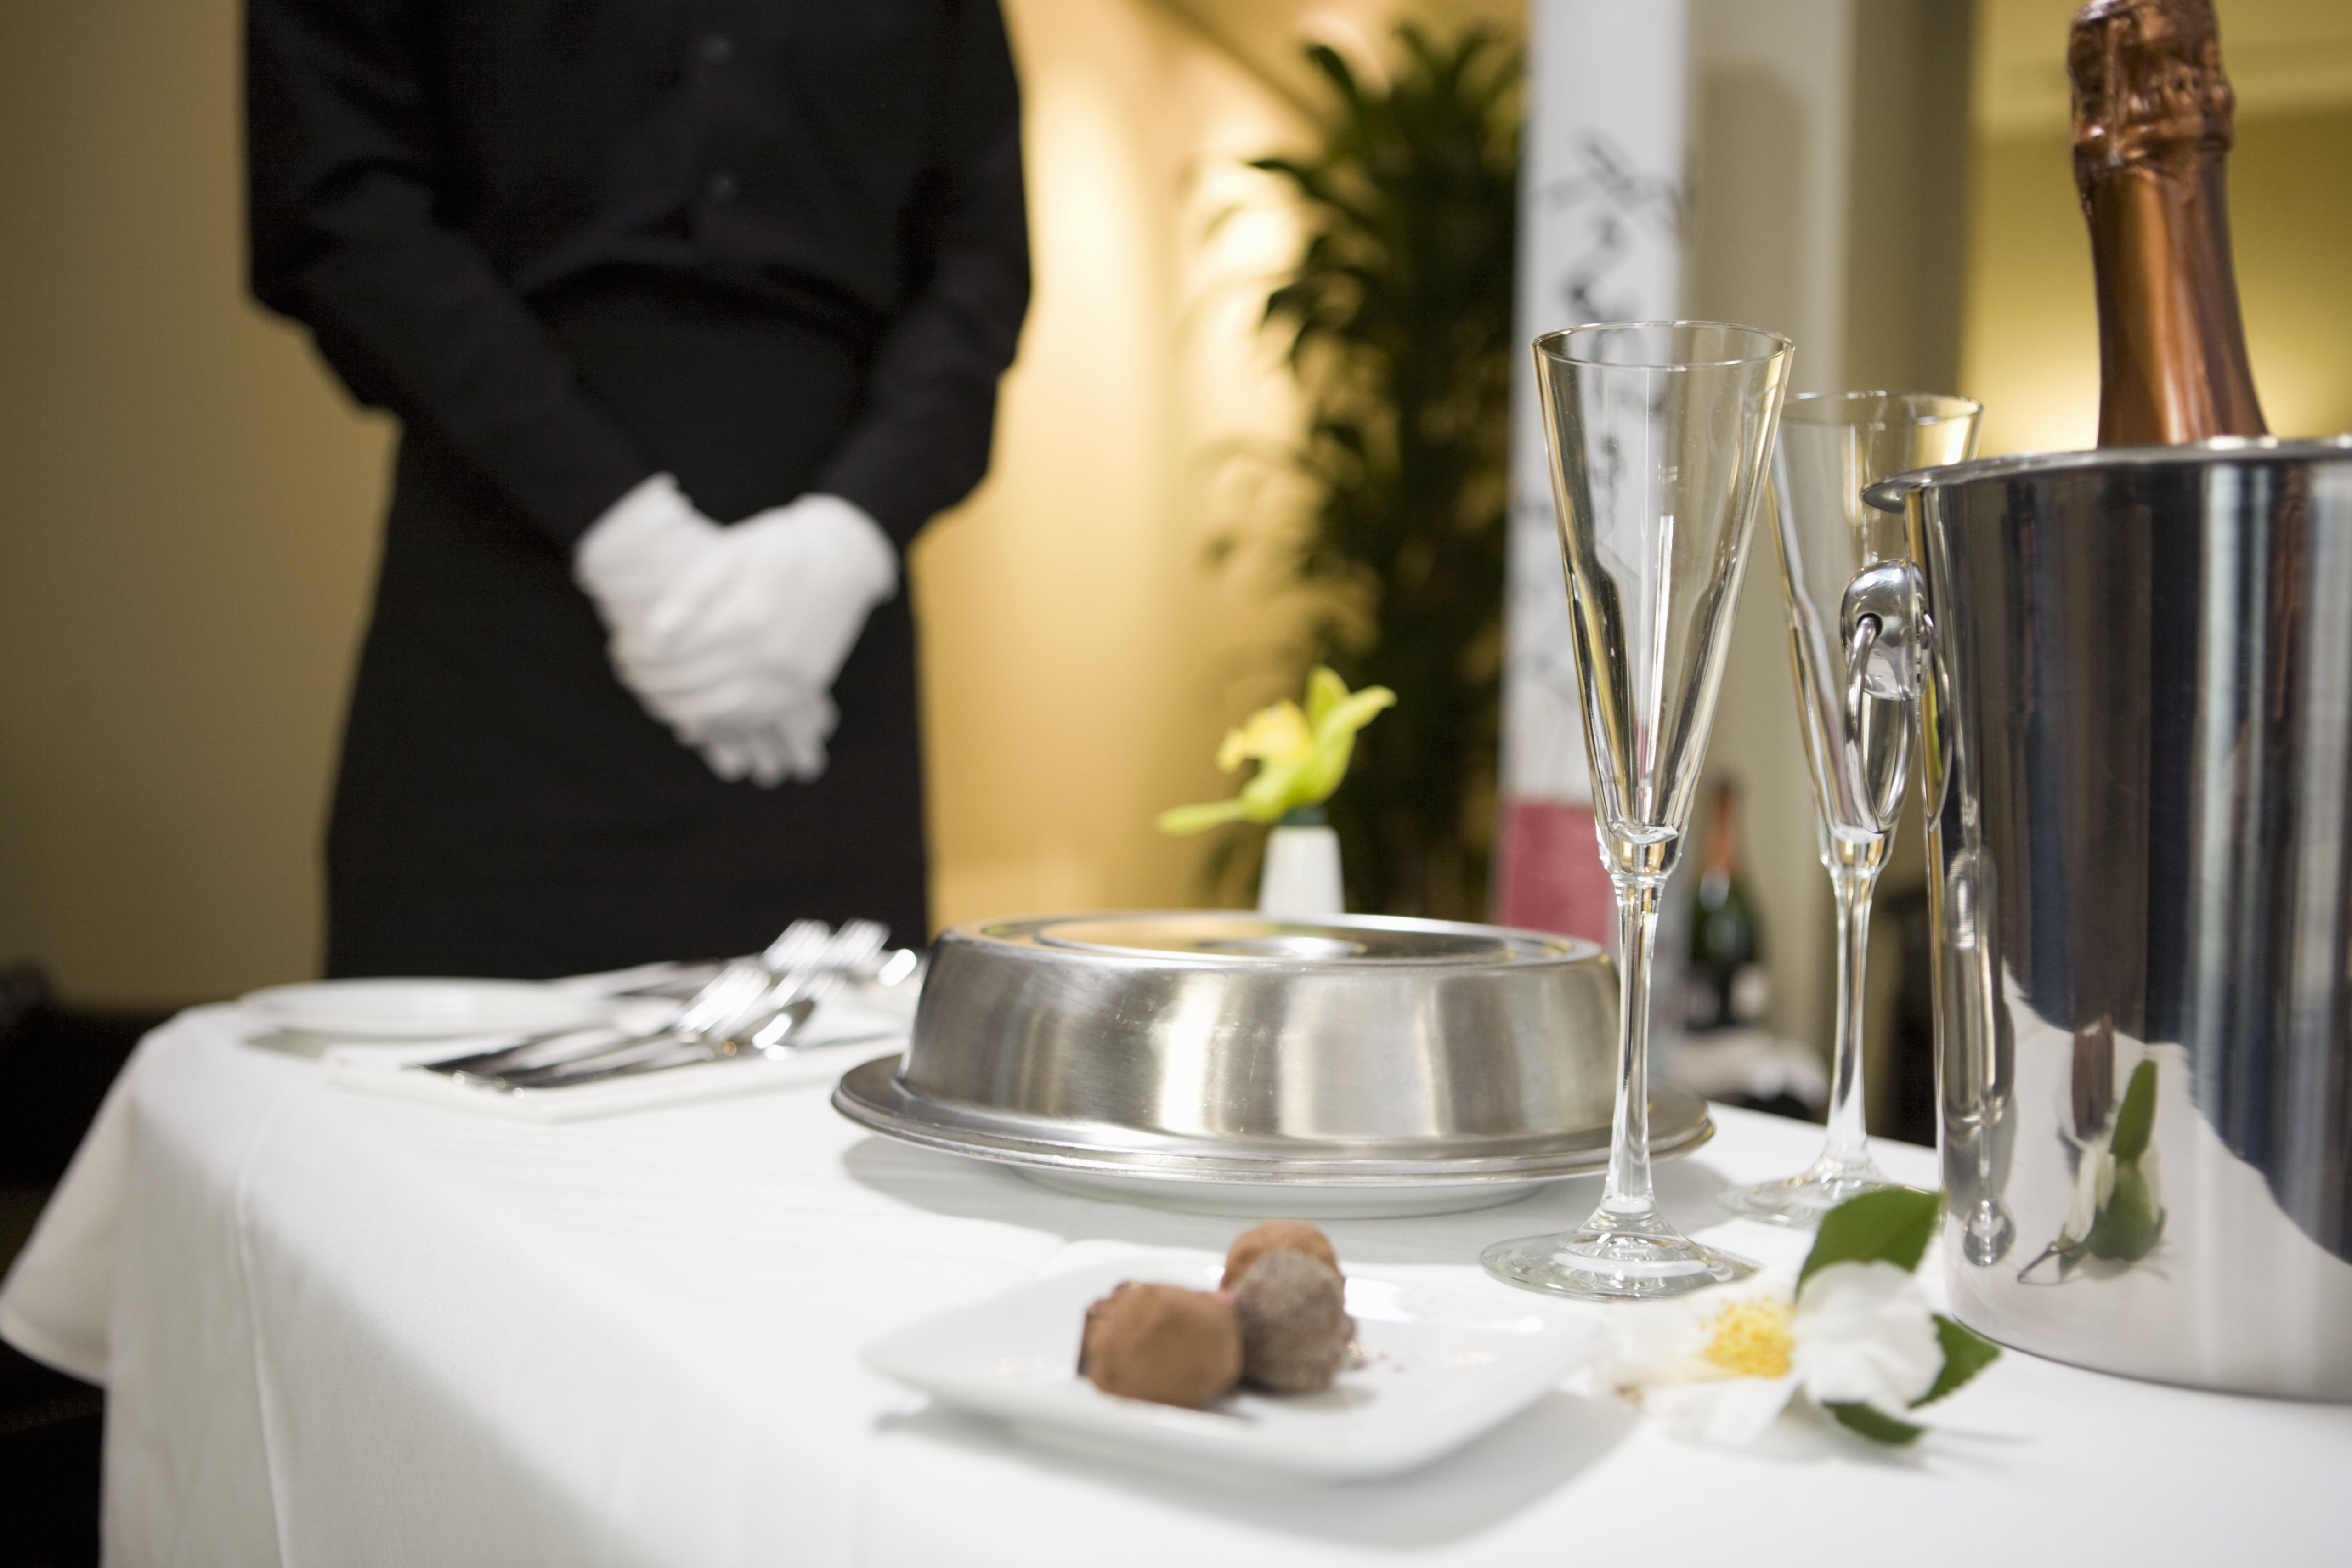 Room Service: Top 10 Musts Of Great Hotel Service